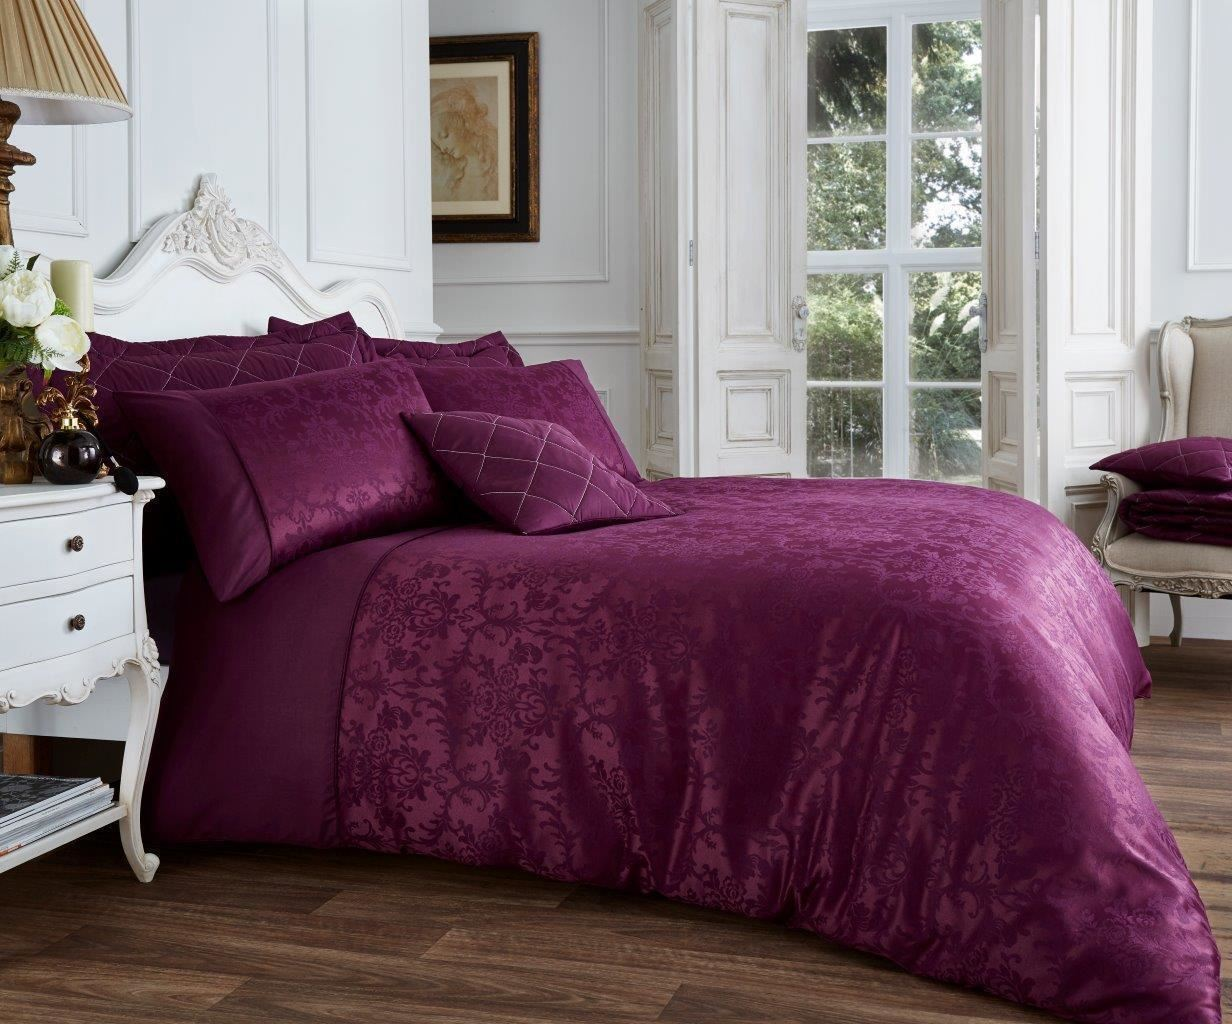 Luxurious vincenza duvet set quilt cover bedding set with pillow cases all sizes ebay - Bedlinnen aubergine ...